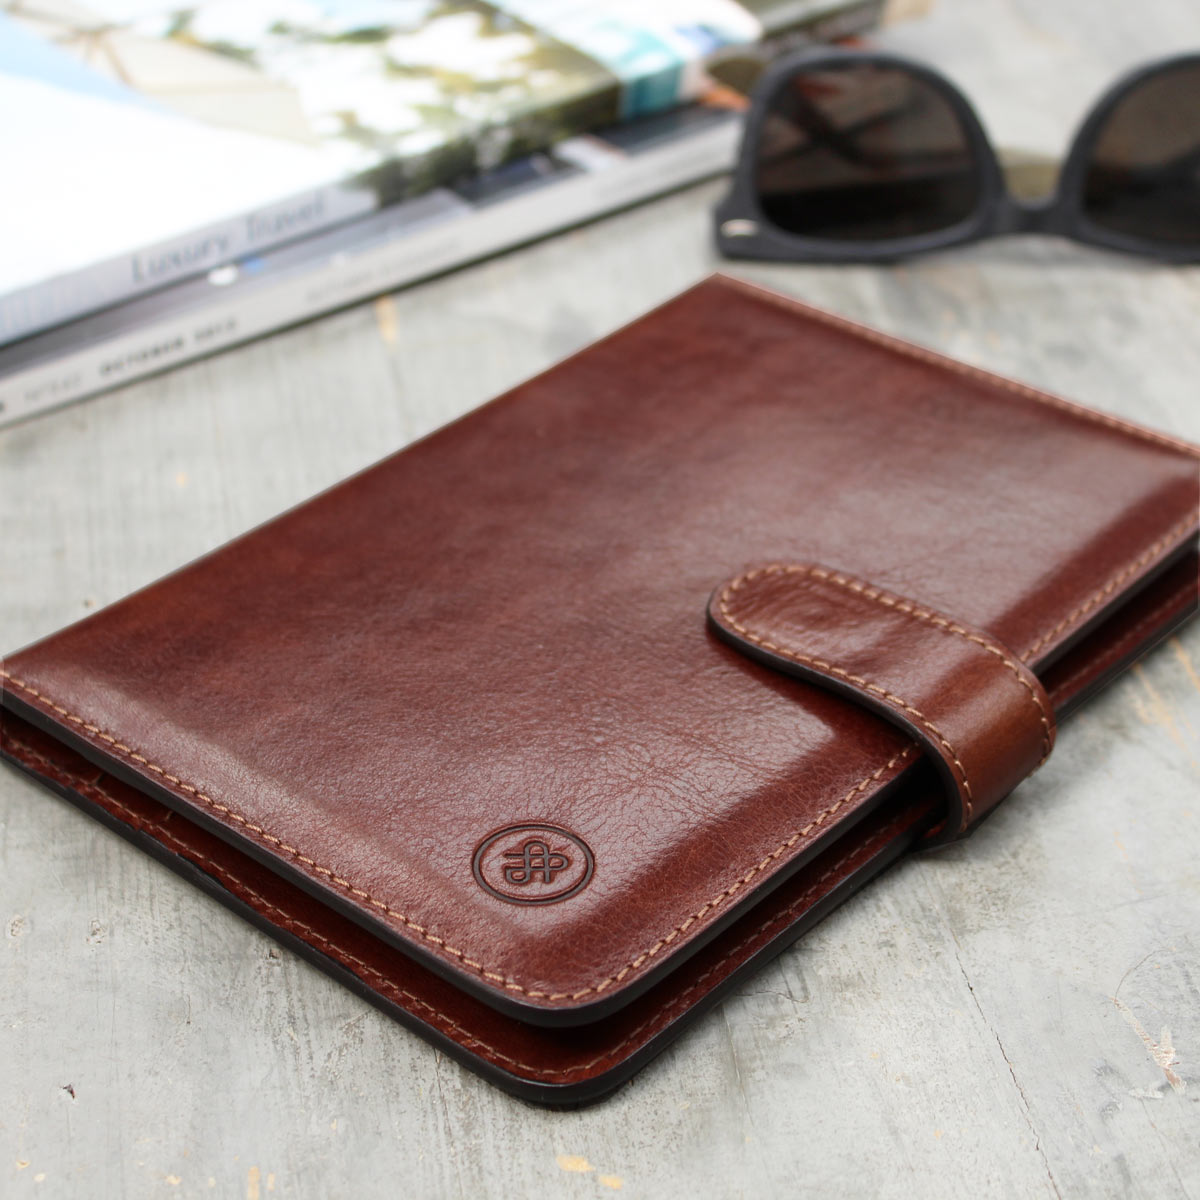 Image 7 of the 'Vieste' Chestnut Veg-Tanned Leather Travel Wallet